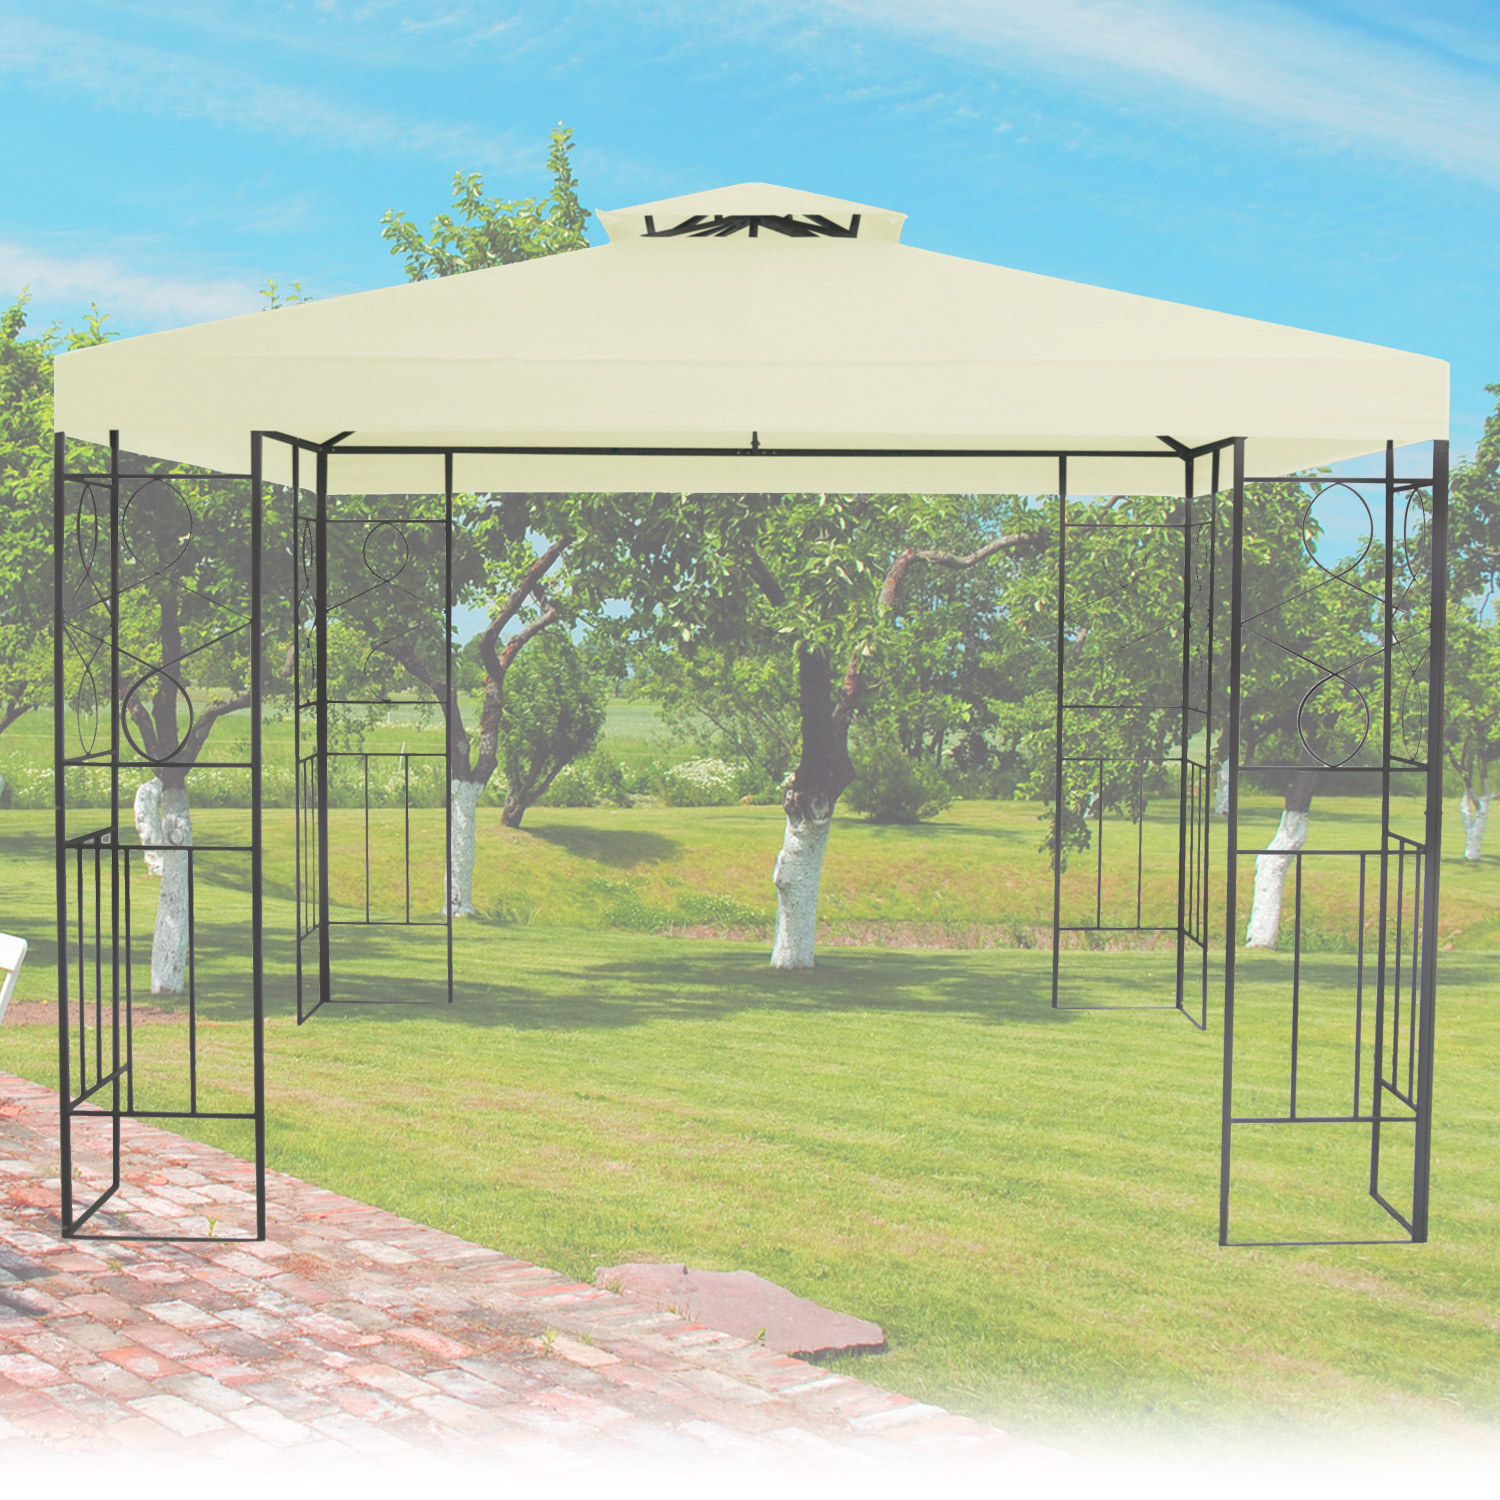 pavillon 3x3m metall gartenpavillon festzelt dach zelt garten beige ebay. Black Bedroom Furniture Sets. Home Design Ideas